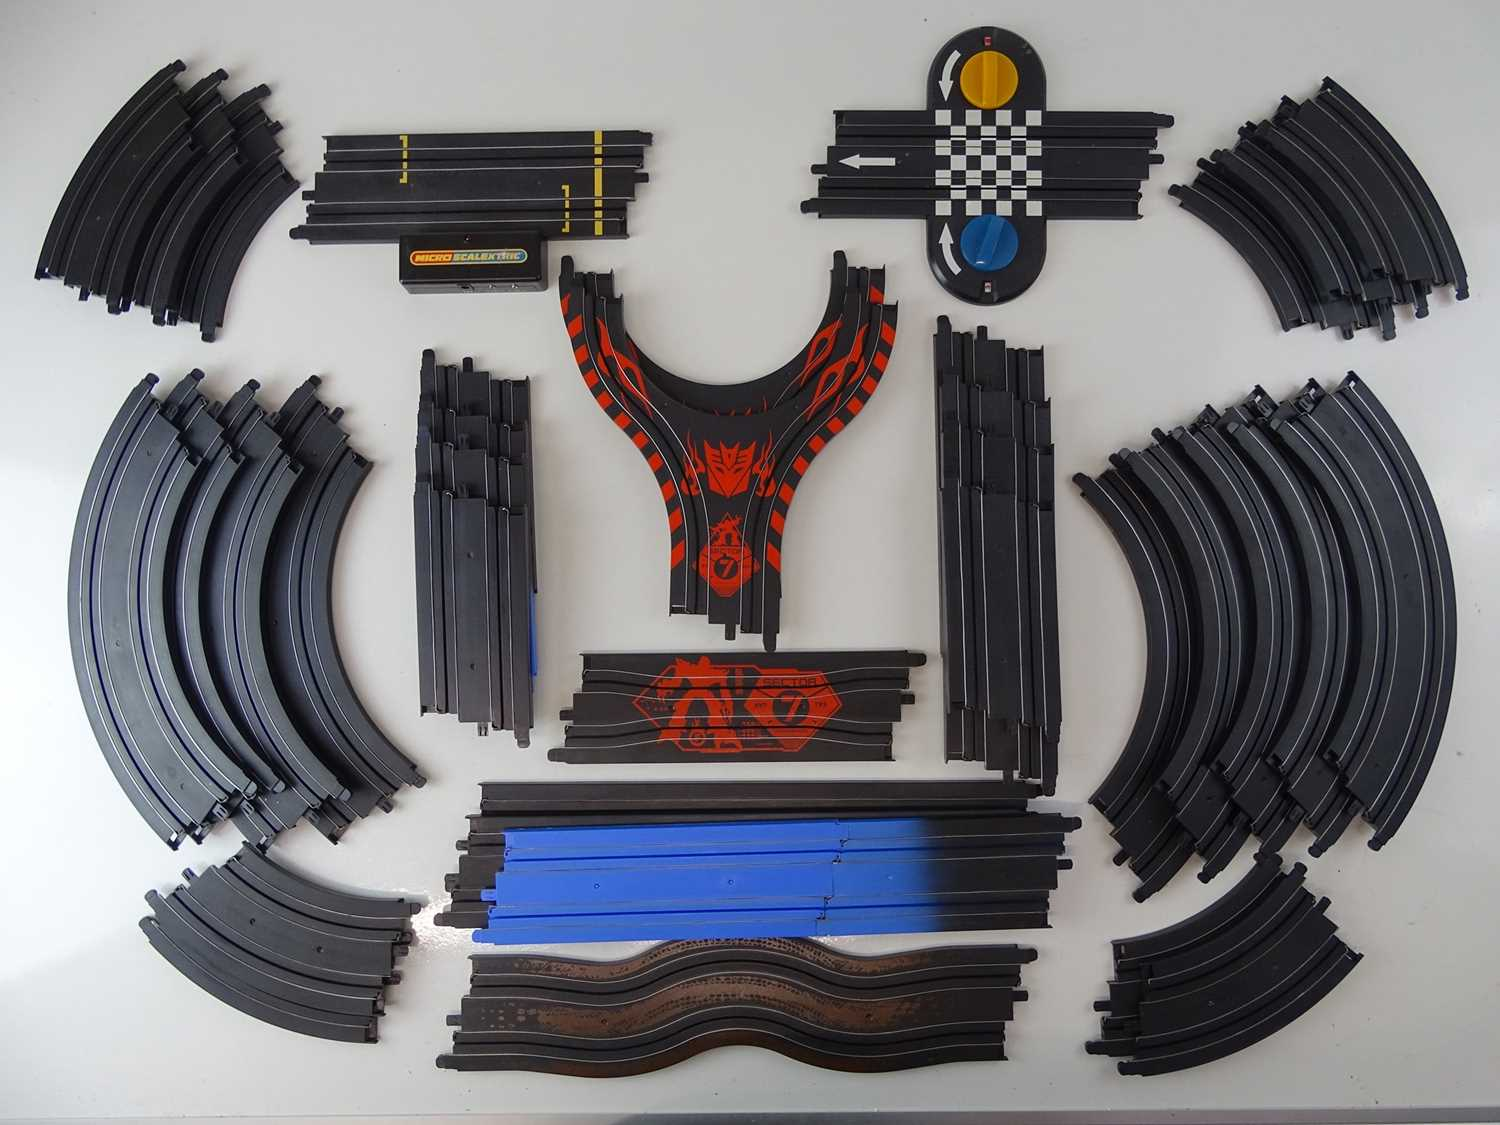 A large quantity of MICRO SCALEXTRIC to include eleven cars and track - G (unboxed) (Q)